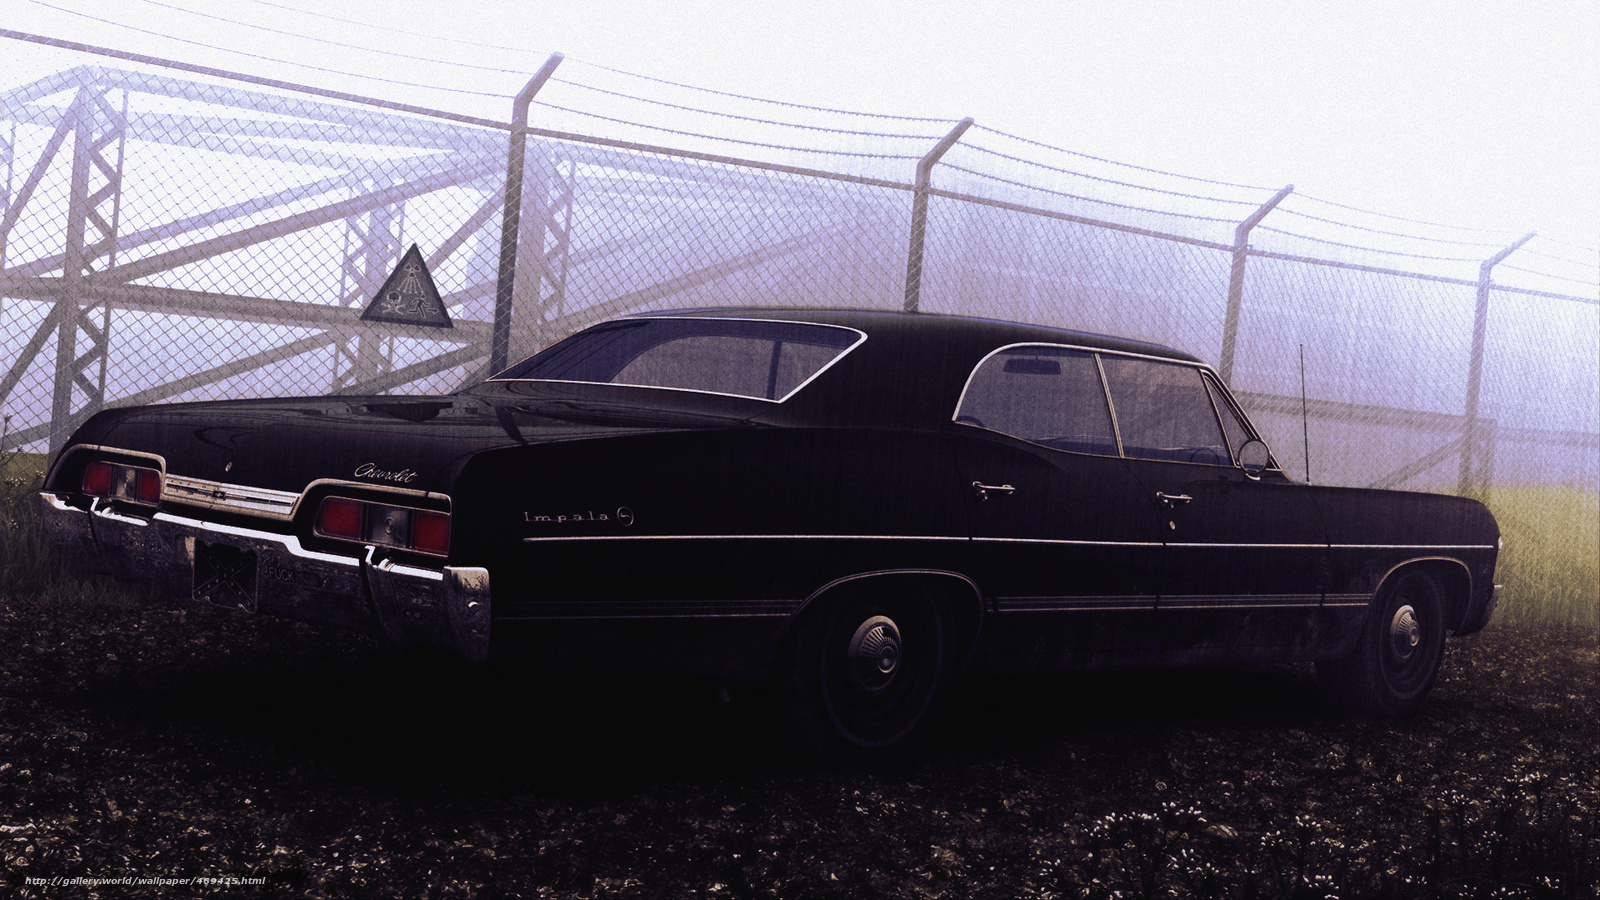 supernatural car impala wallpaper - photo #41